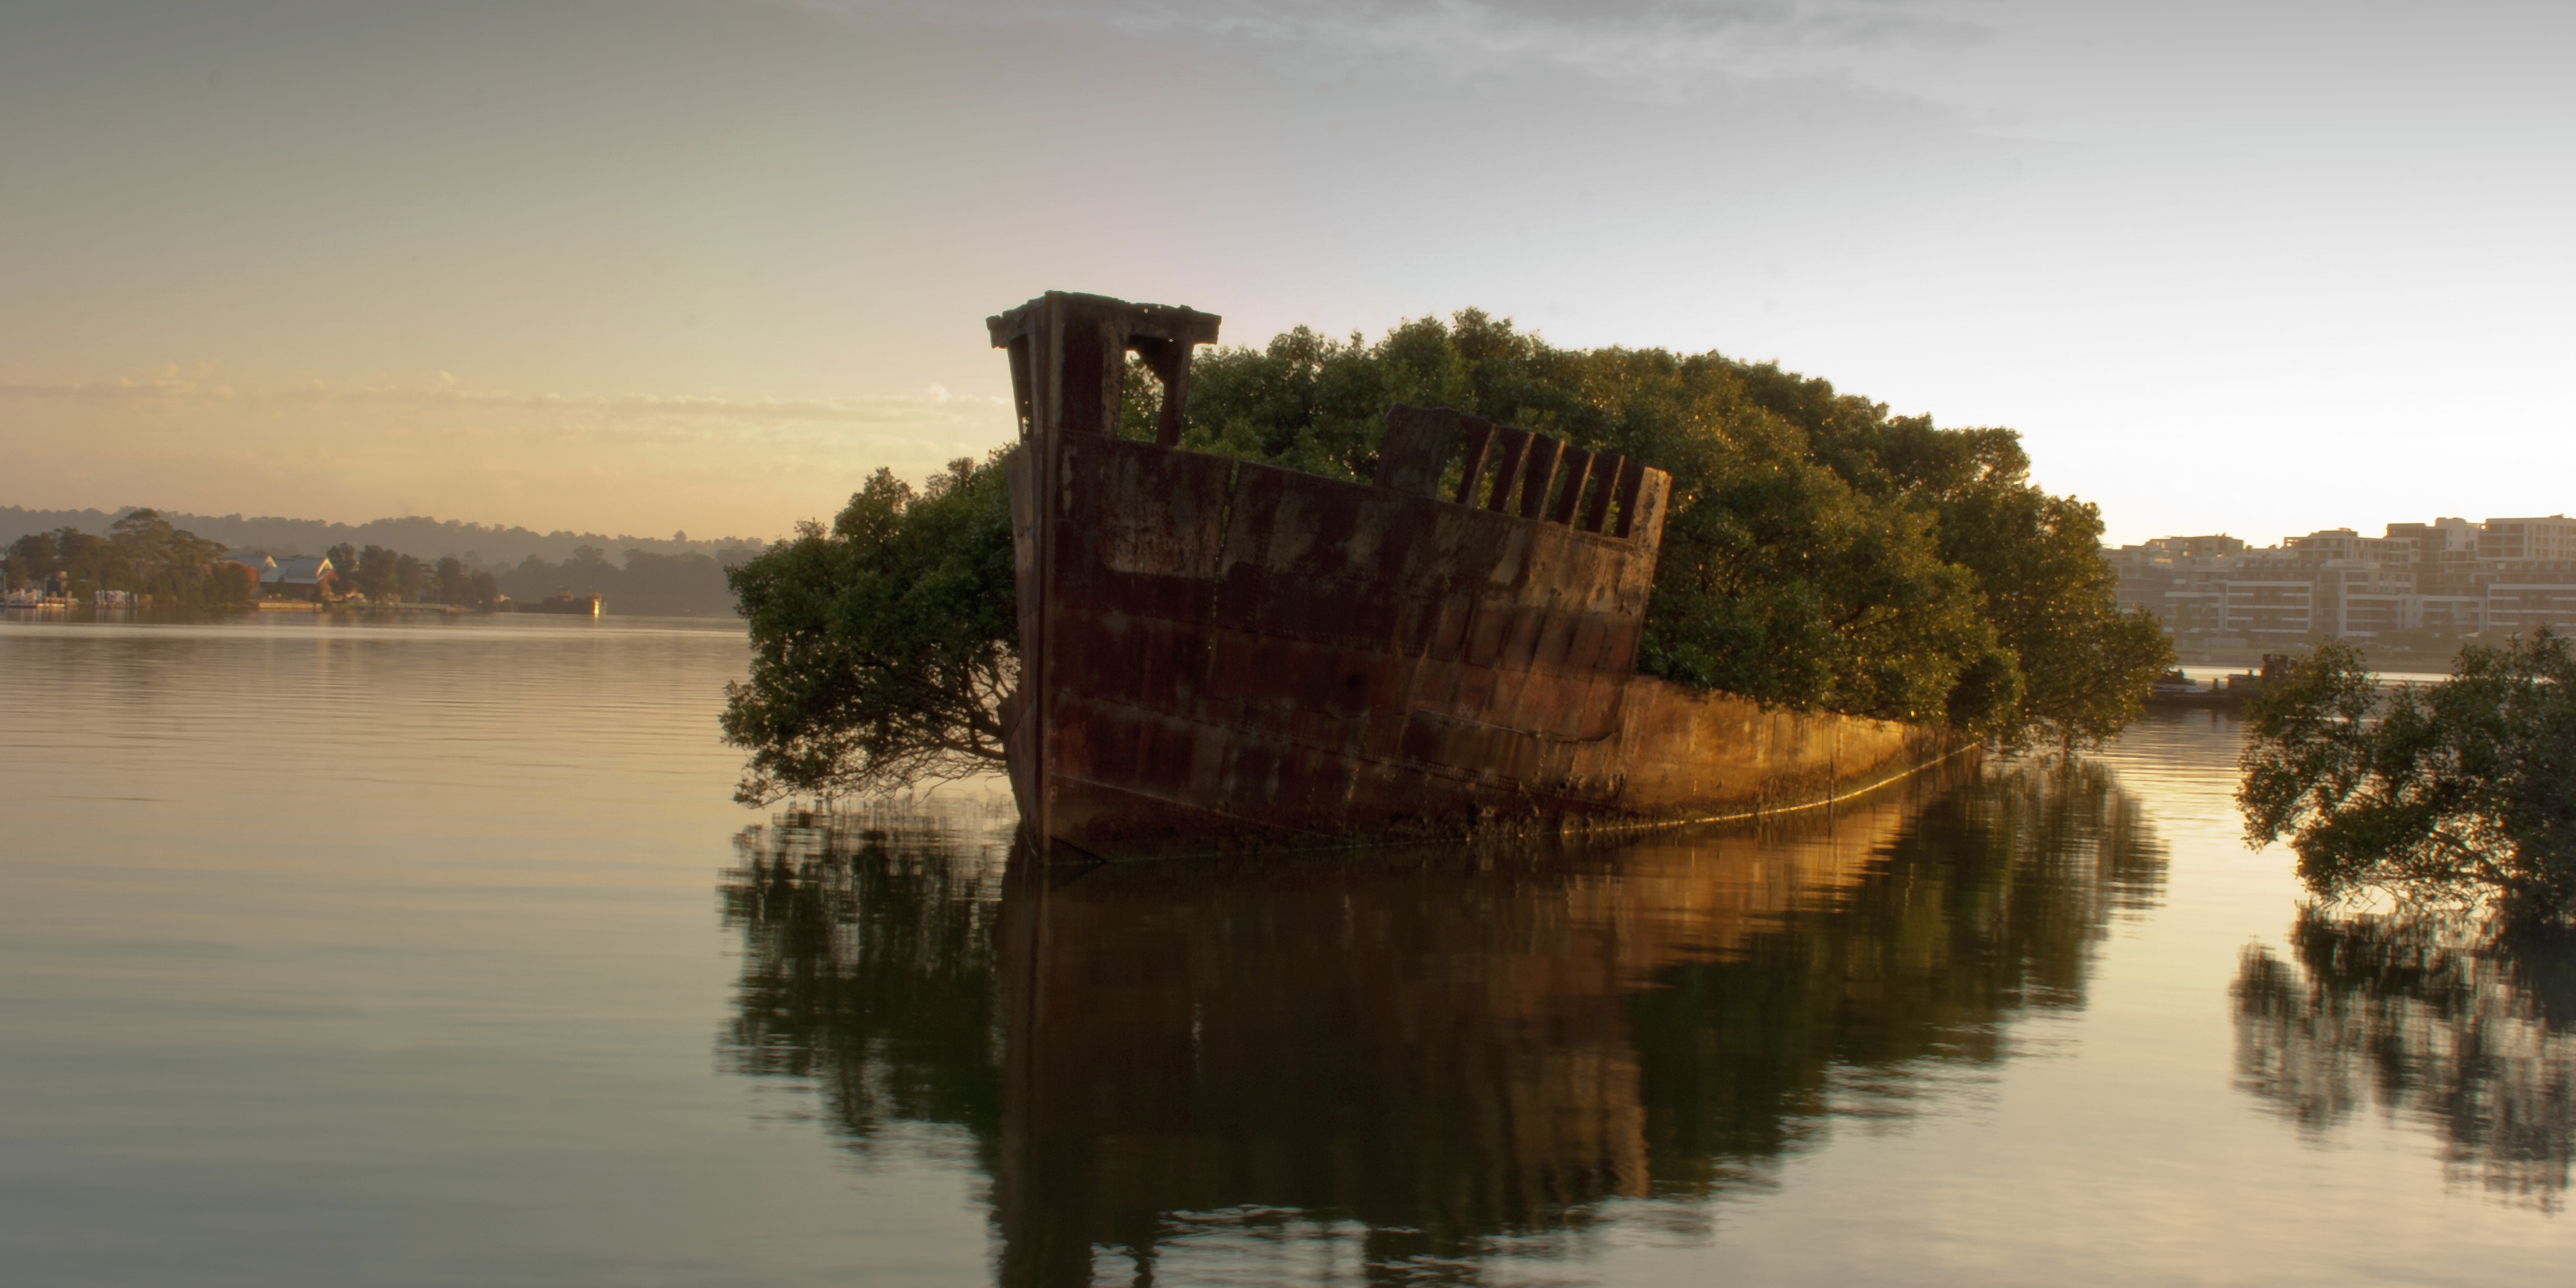 Floating Mangrove Forest Springs Up in a Wrecked Coal Ship ...